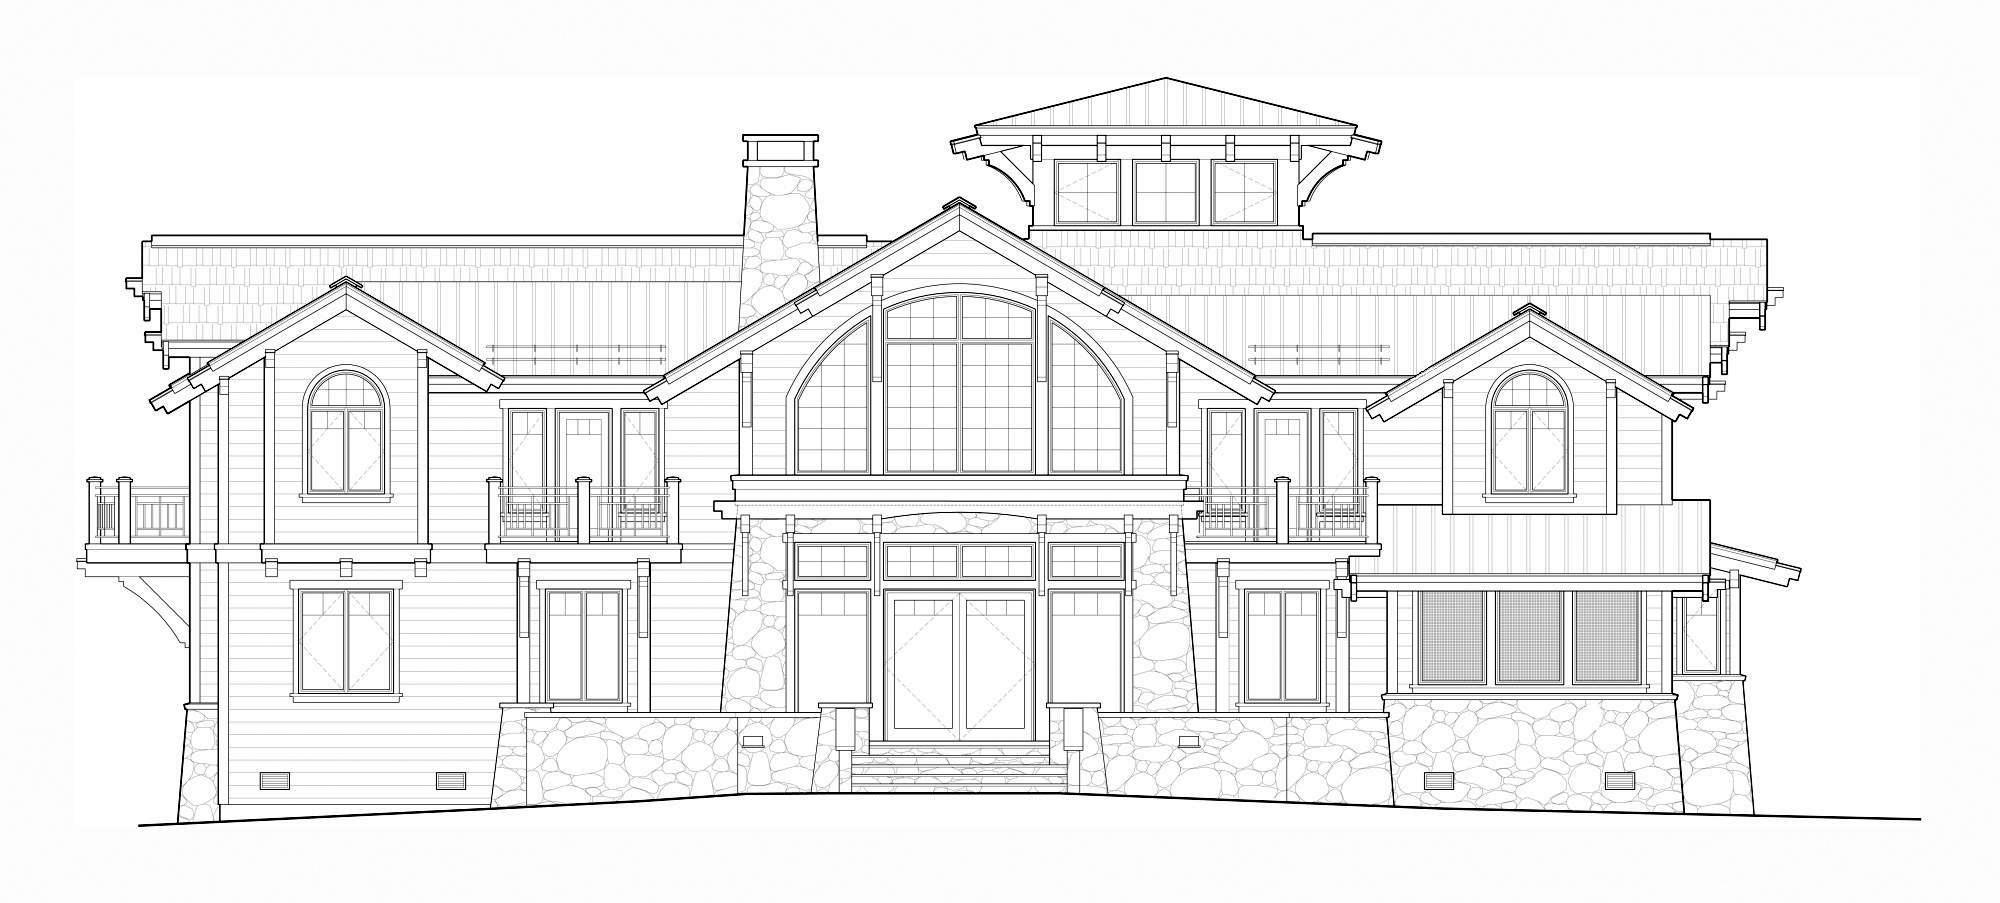 Home Front Elevation Drawings : Idaho mountain architects hendricks architecture